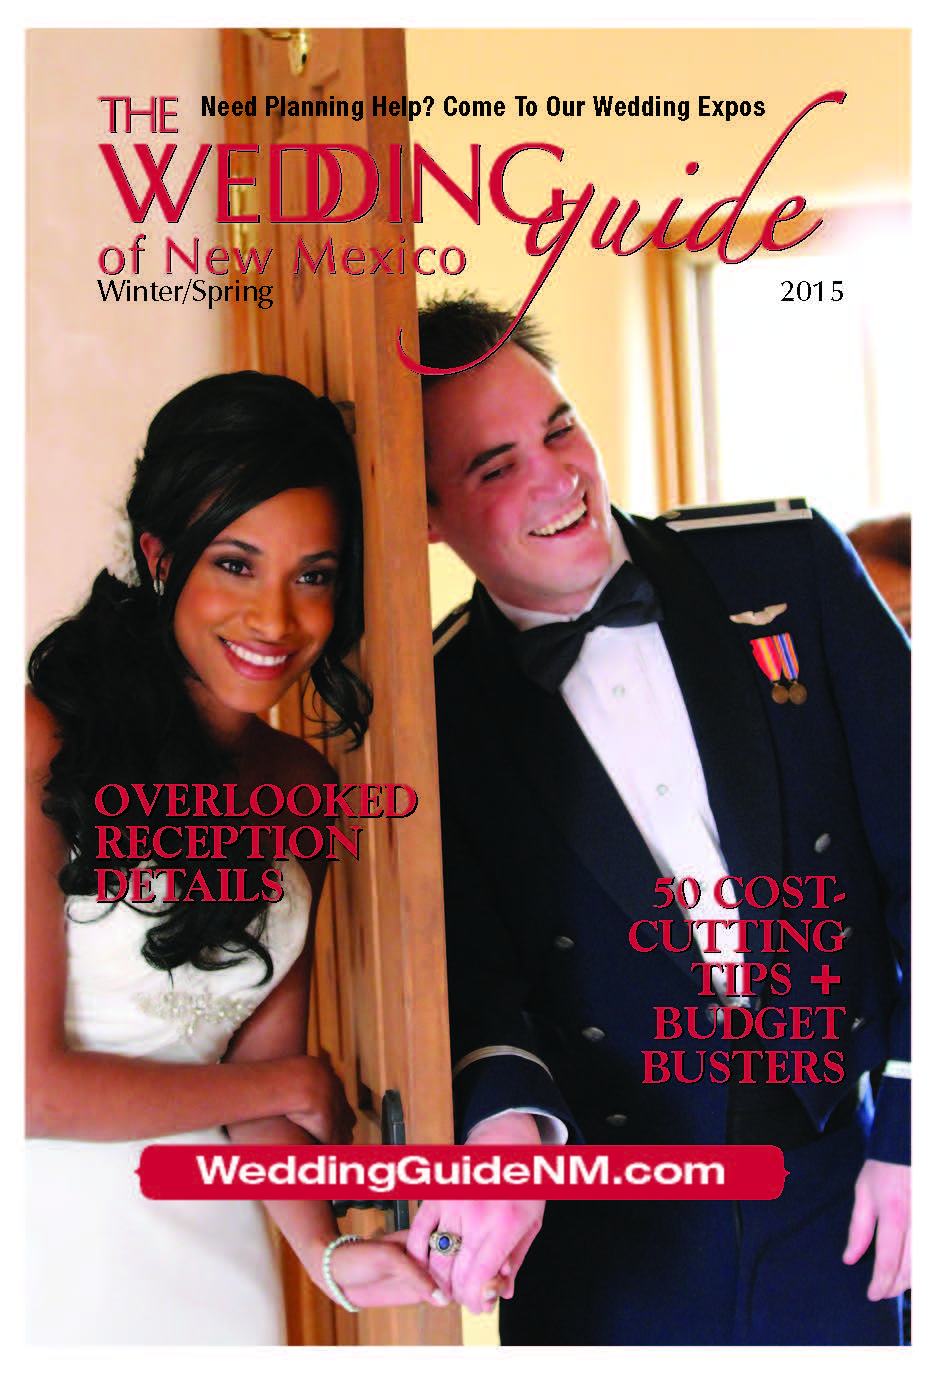 NM Wedding Guide 2015 cover_Page_01.jpg